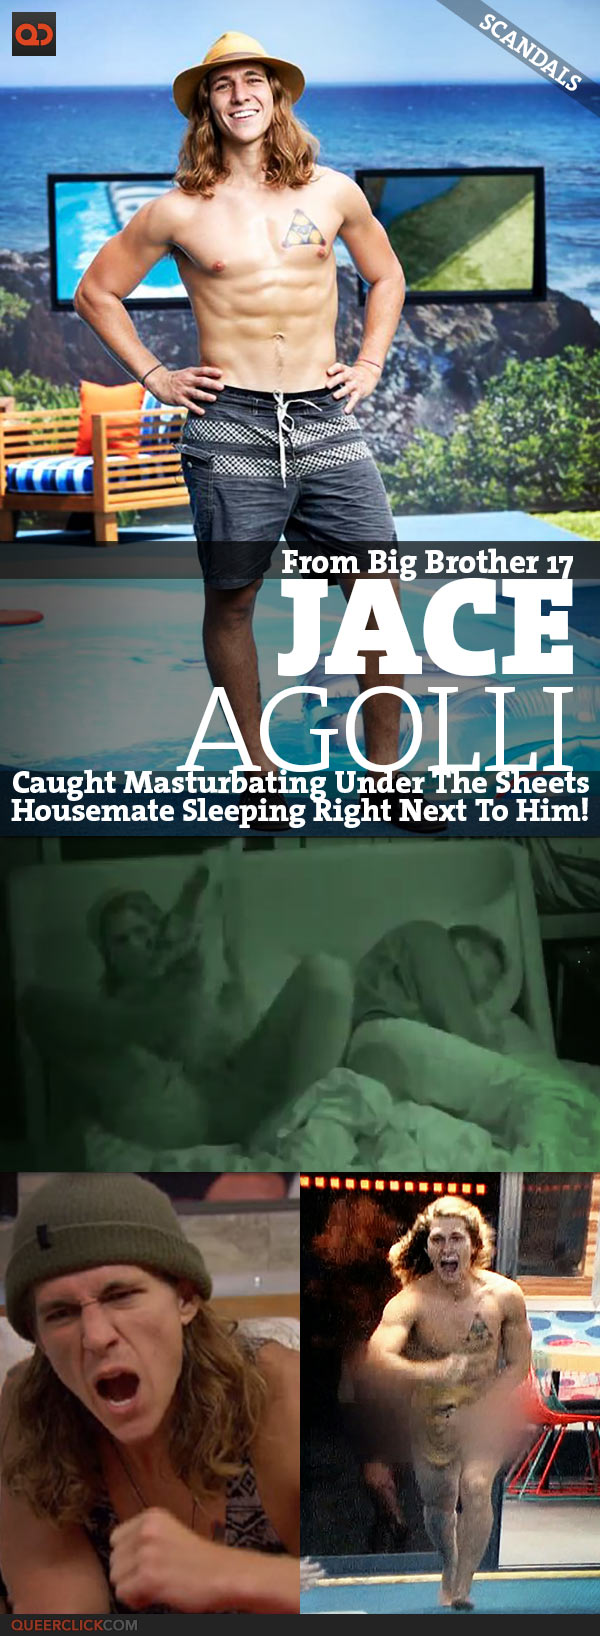 QC Scandals: Jace Agolli, From Big Brother 17, Caught Masturbating Under The Sheets While Housemate Was Sleeping Next To Him!